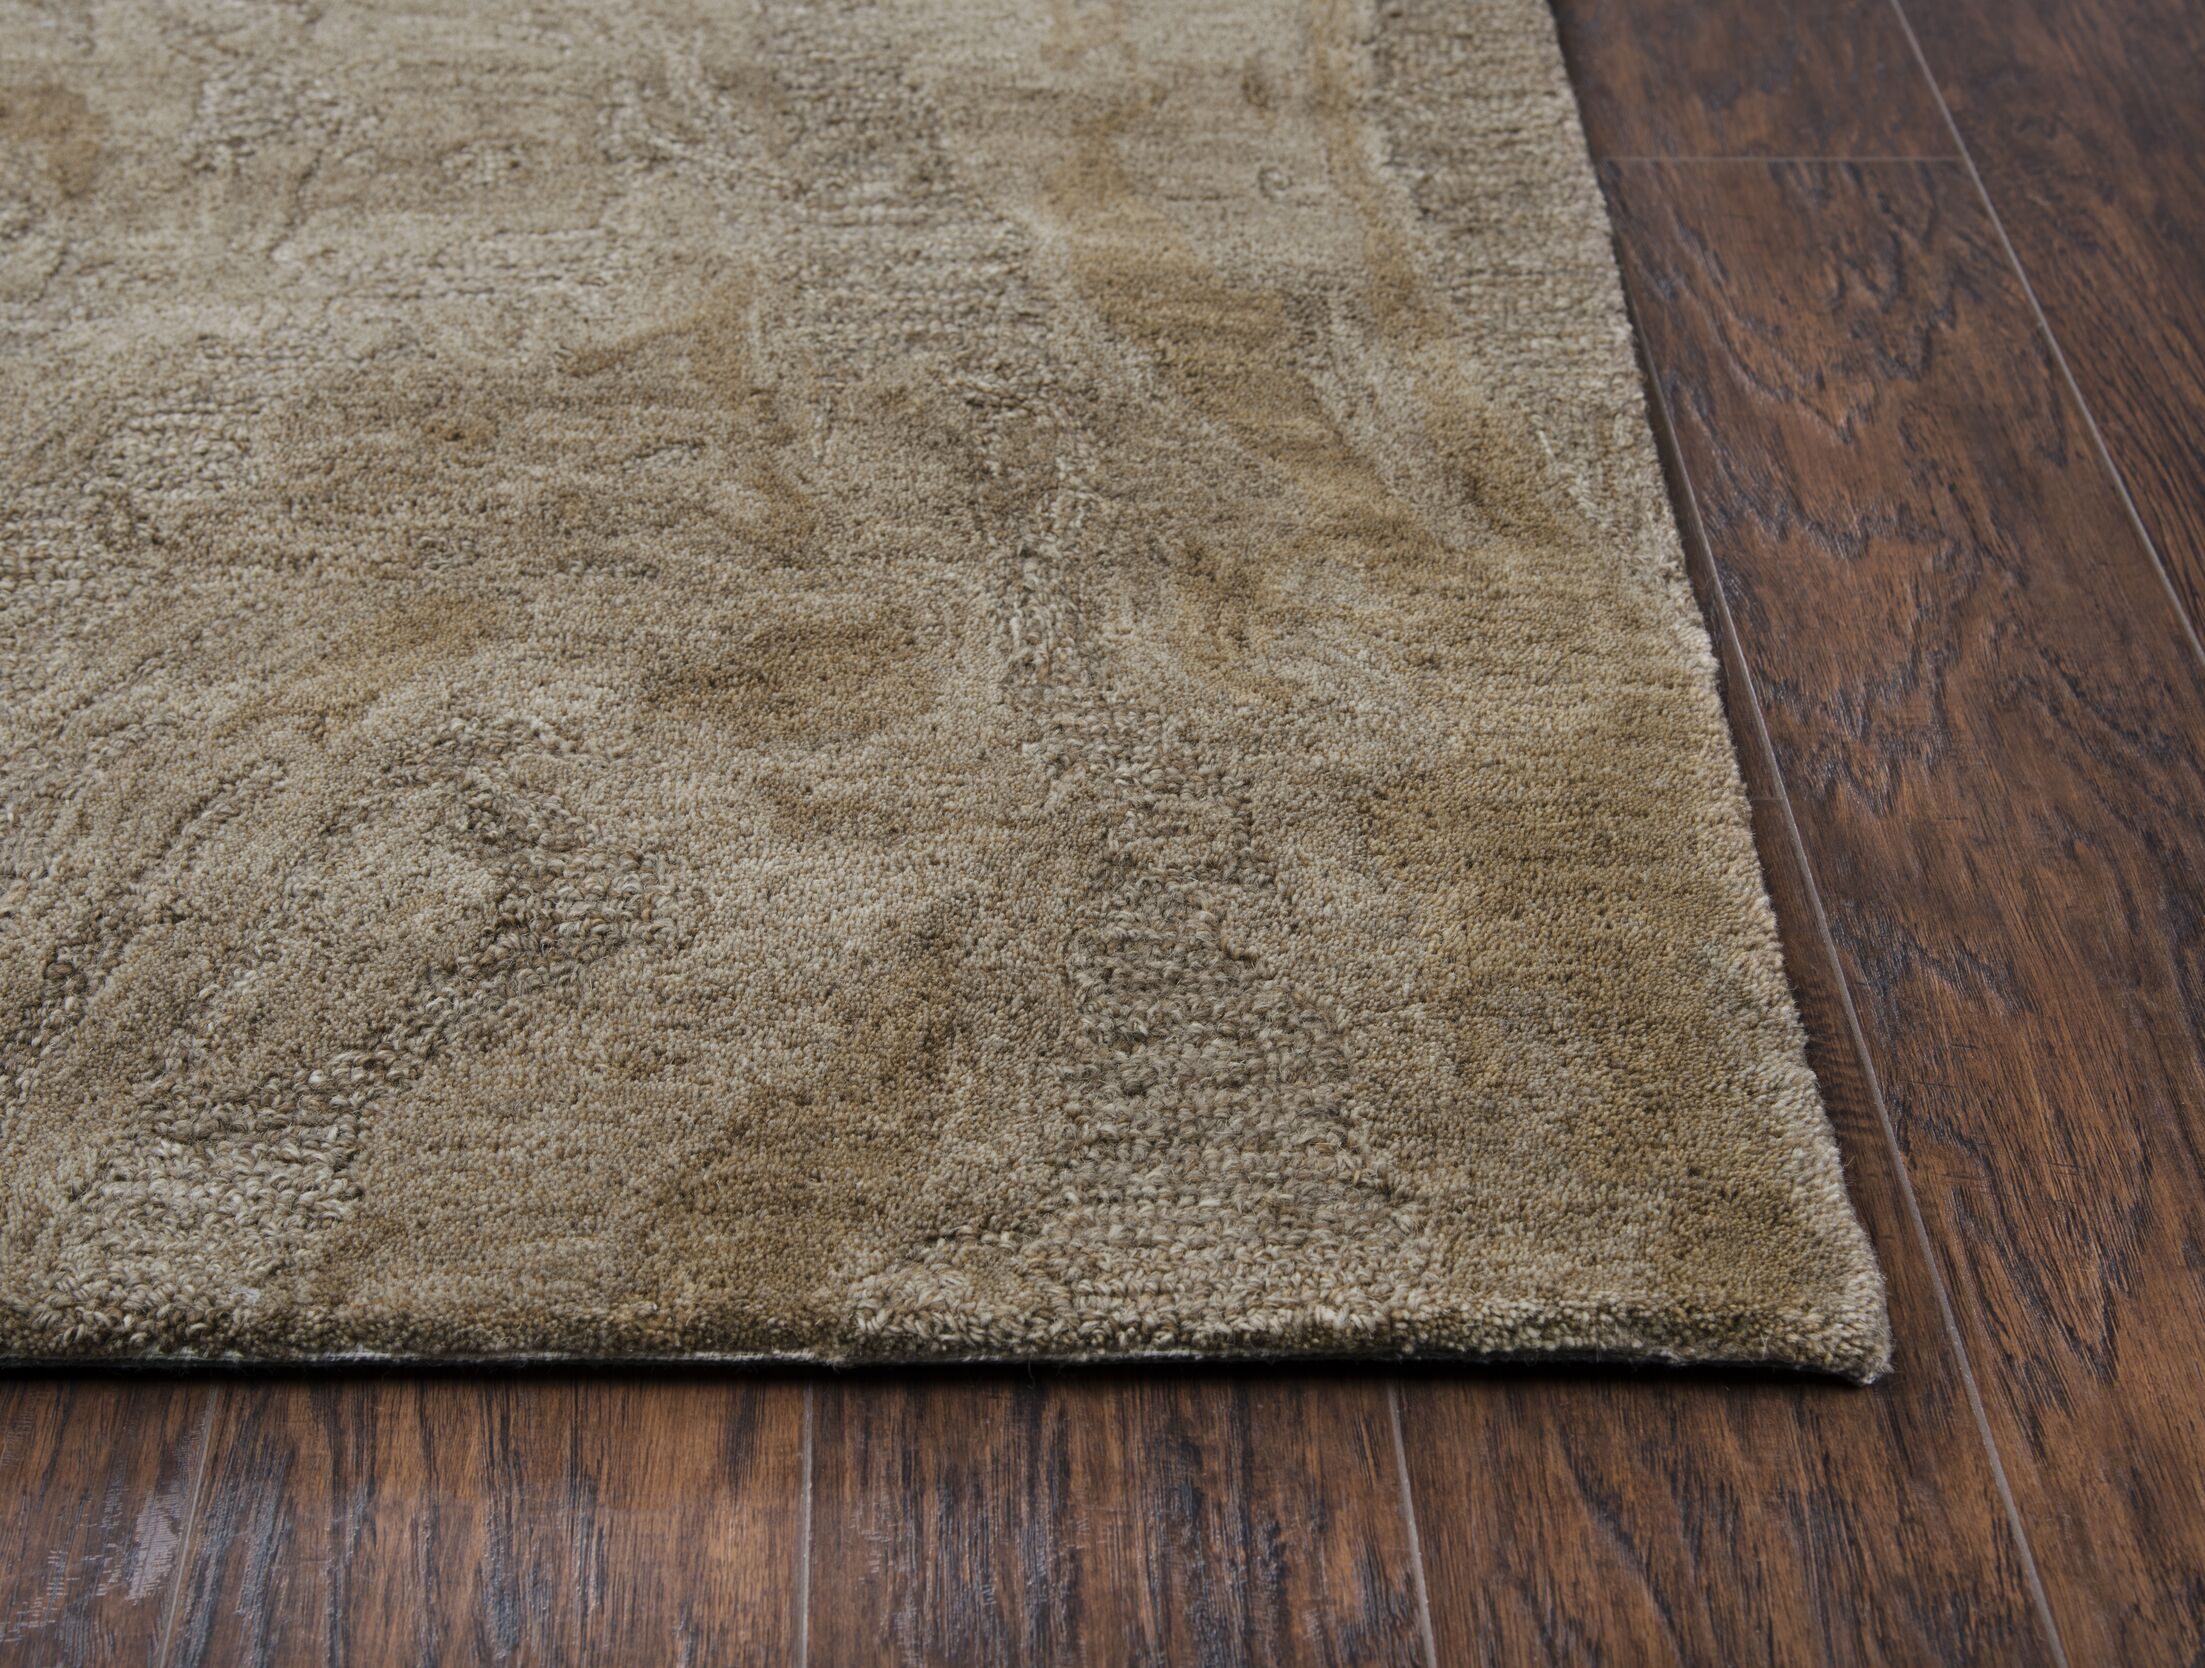 Phan Hand-Tufted Wool Brown Area Rug Rug Size: Rectangle5' x 8'